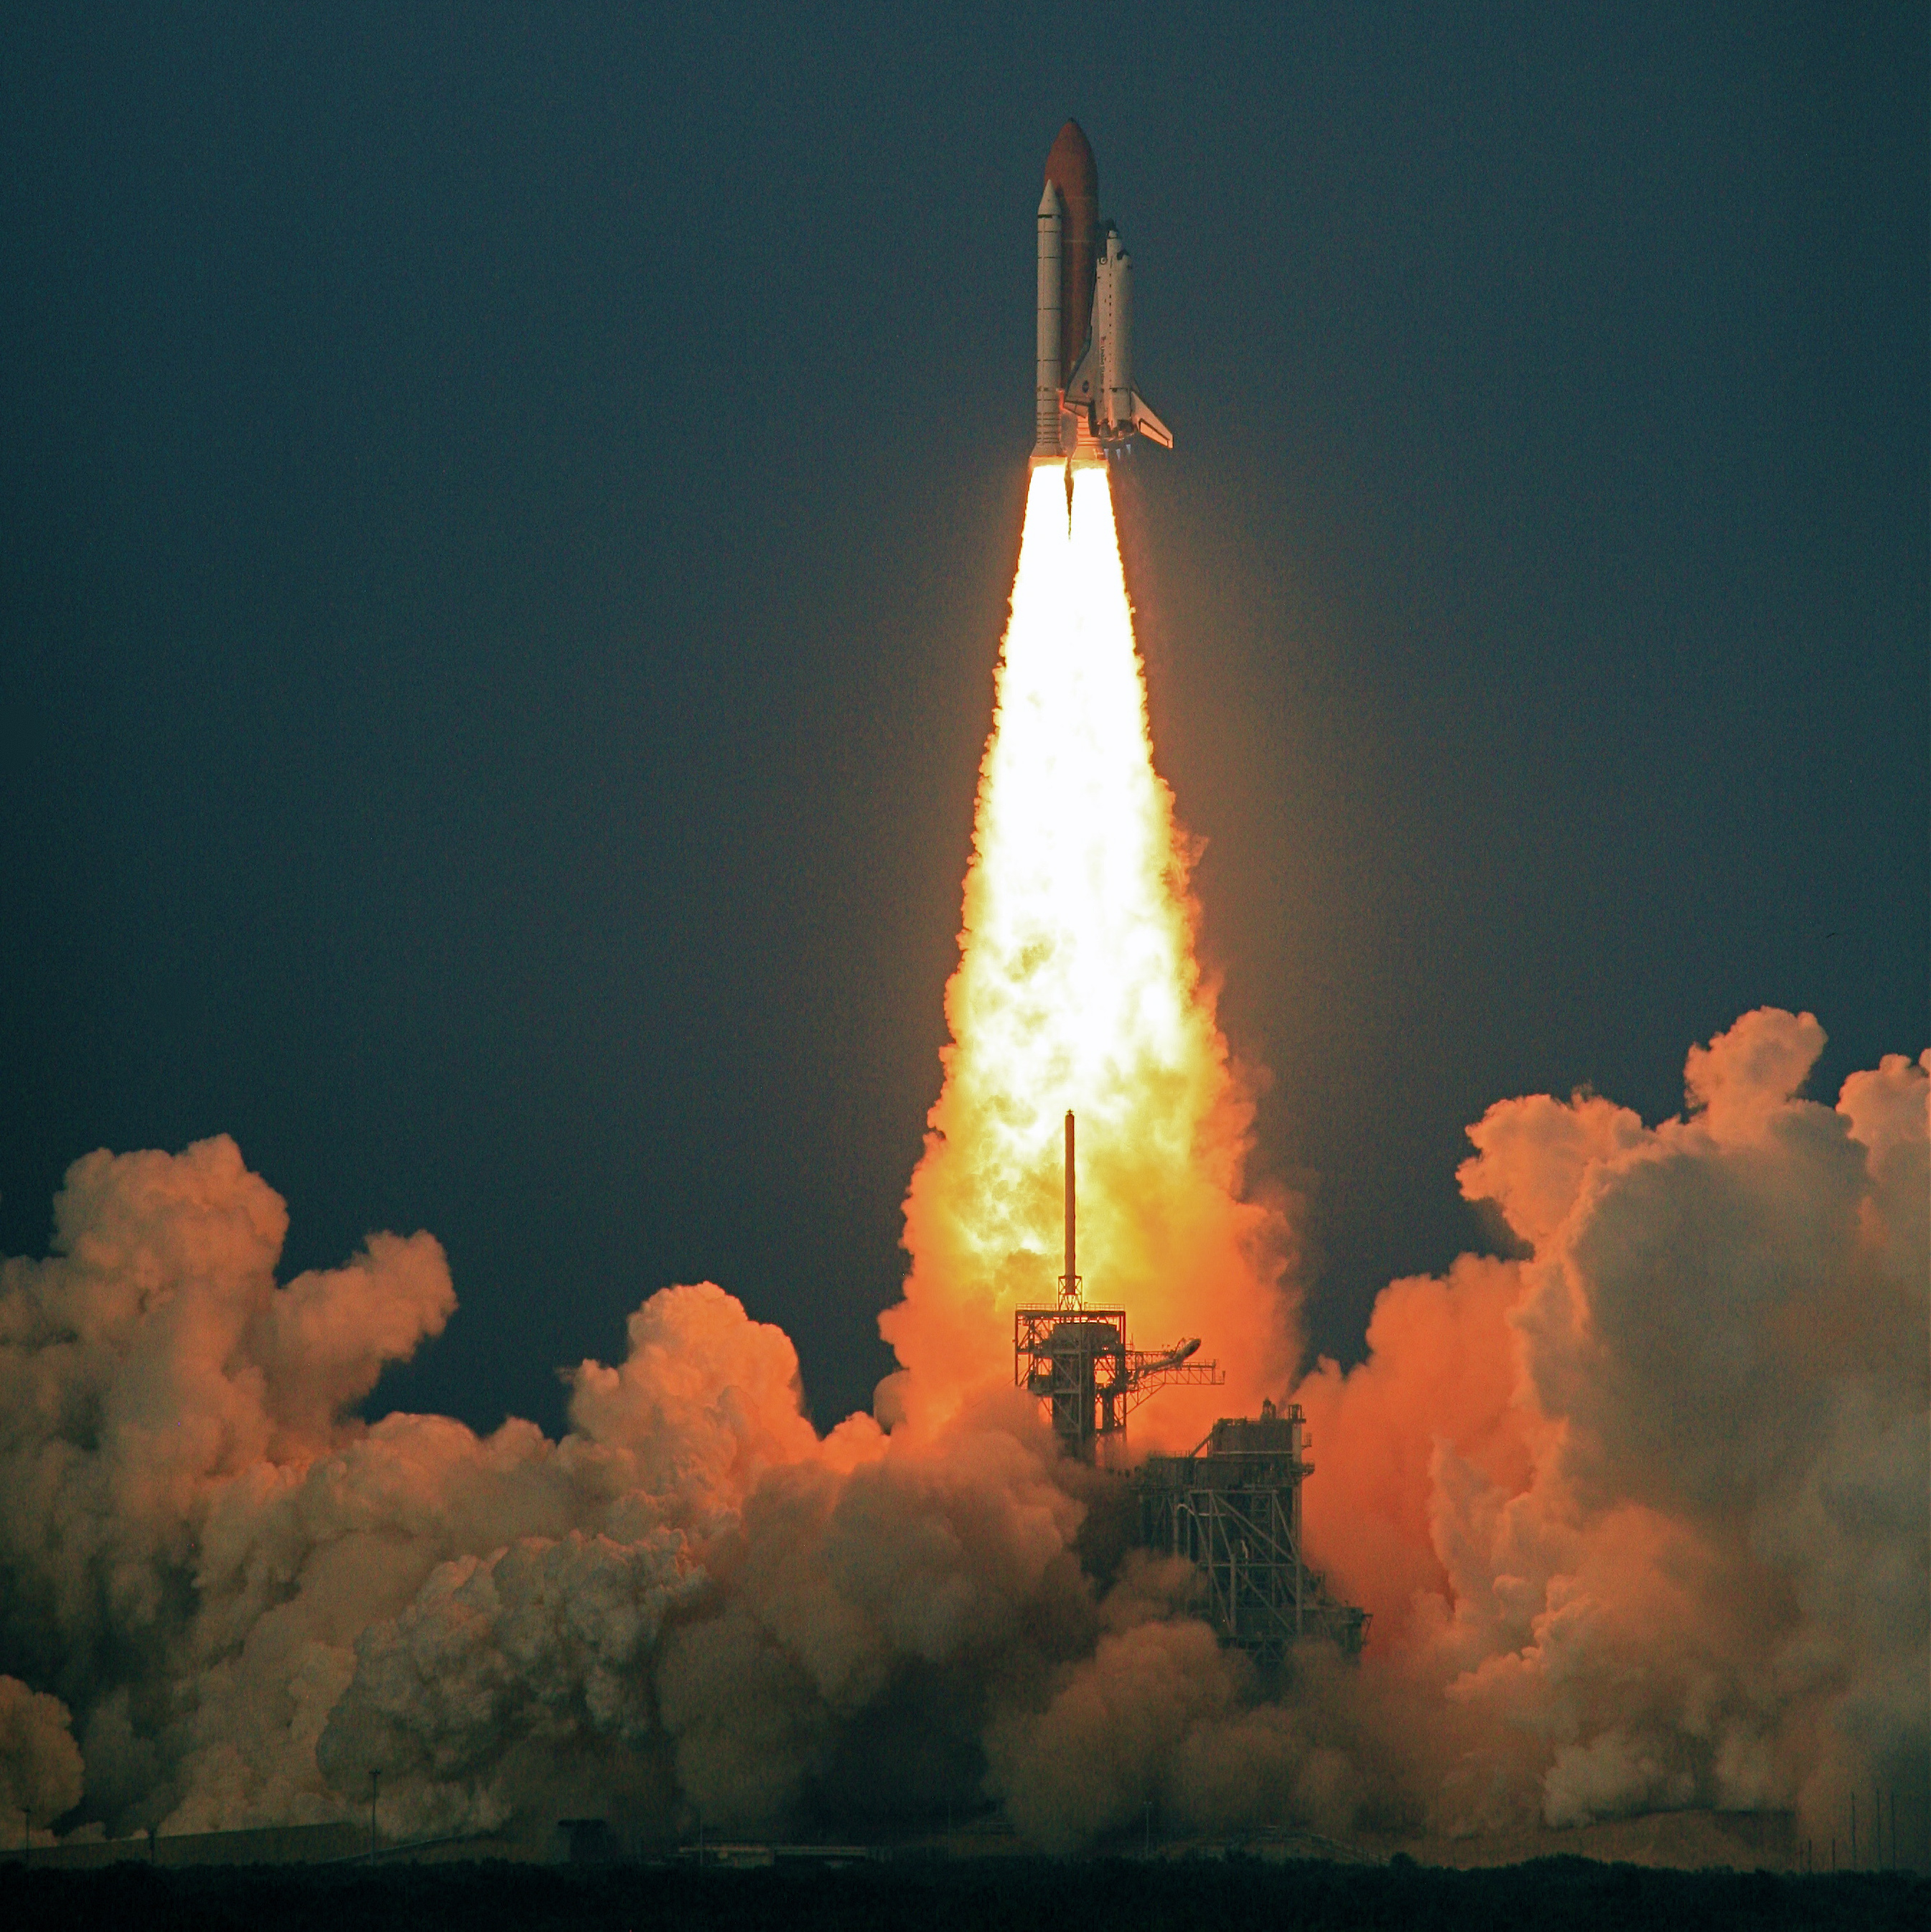 another perfect launch! Ad Astra!